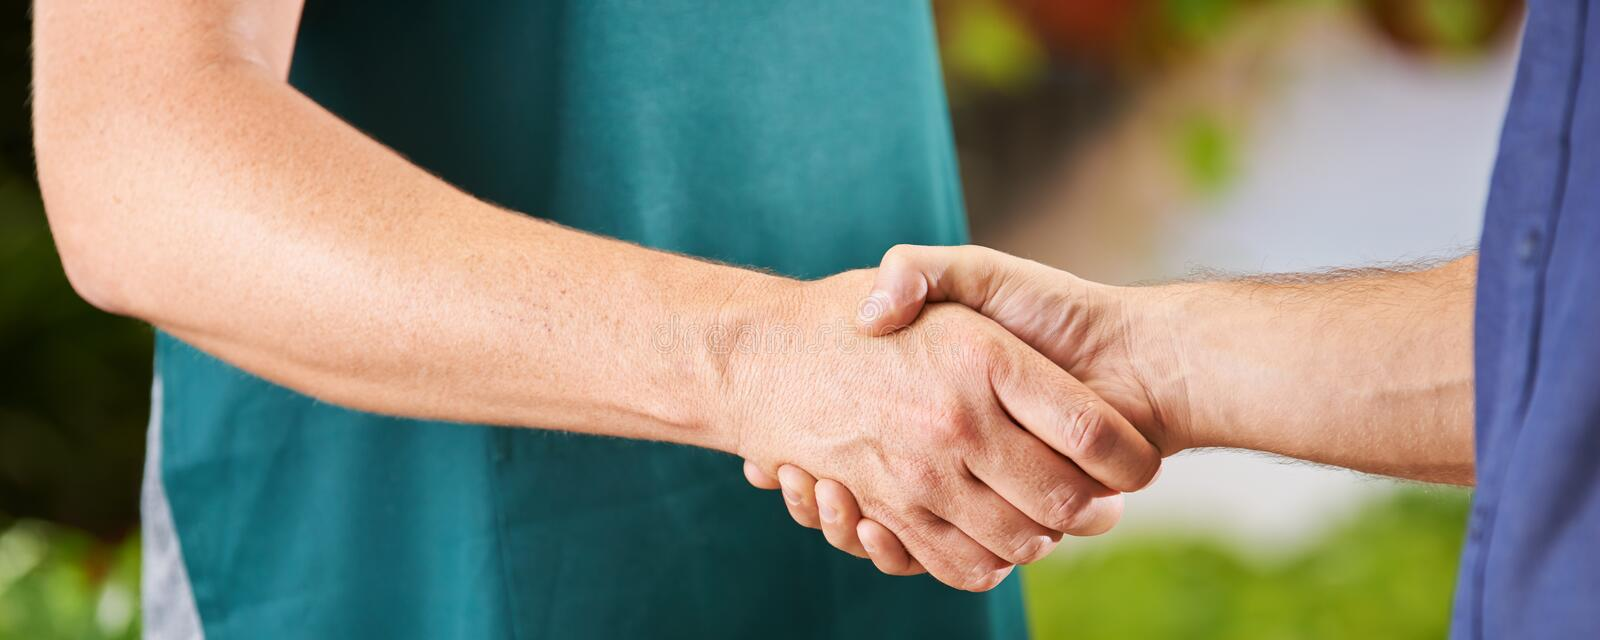 Worker doing welcome shakehands royalty free stock photos